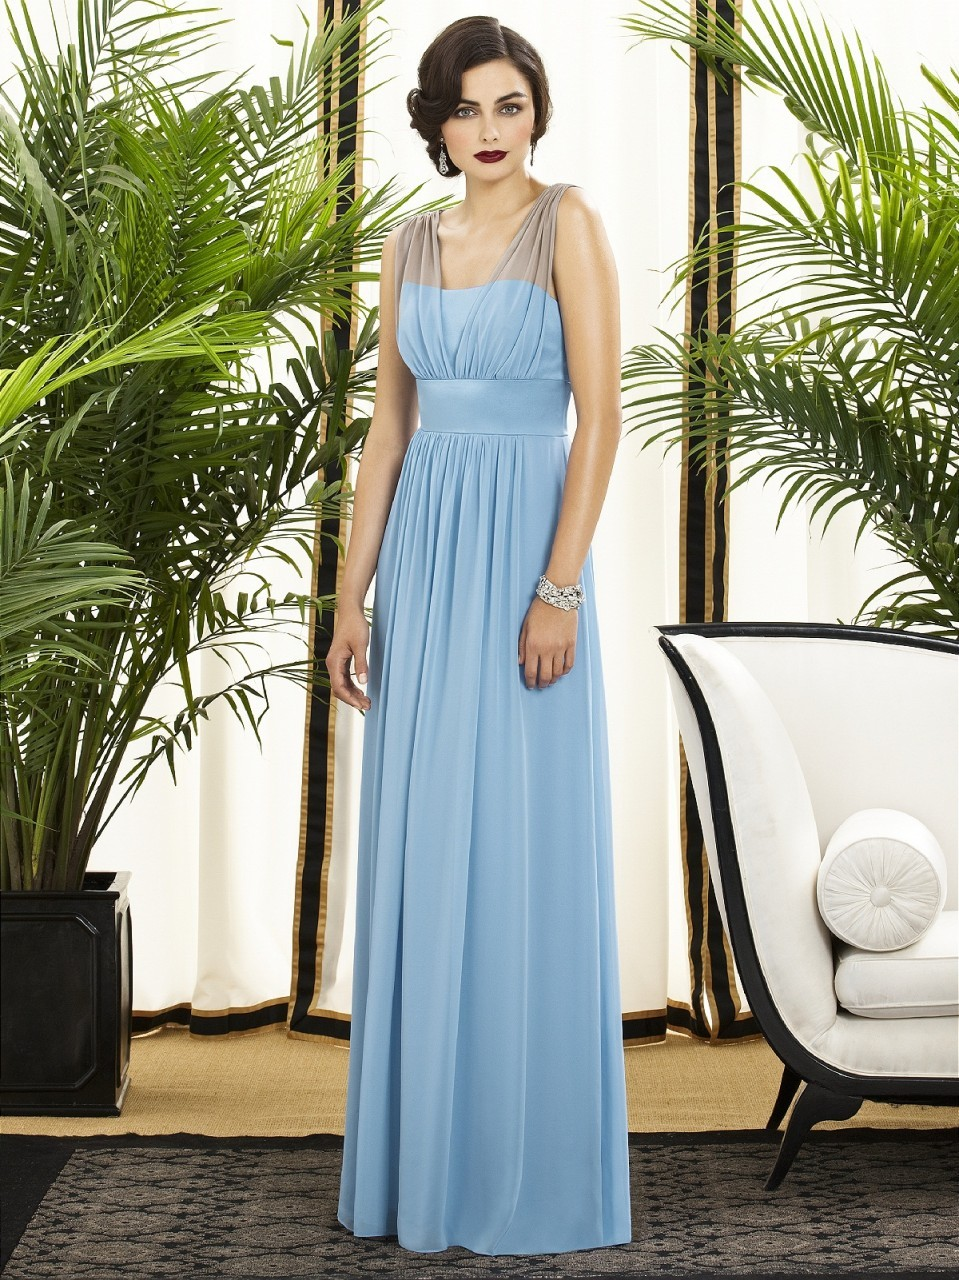 Dessy bridesmaid dressesdessy dresses 2890d2890the dessy group dessy bridesmaid dresses dessy 2890 ombrellifo Images